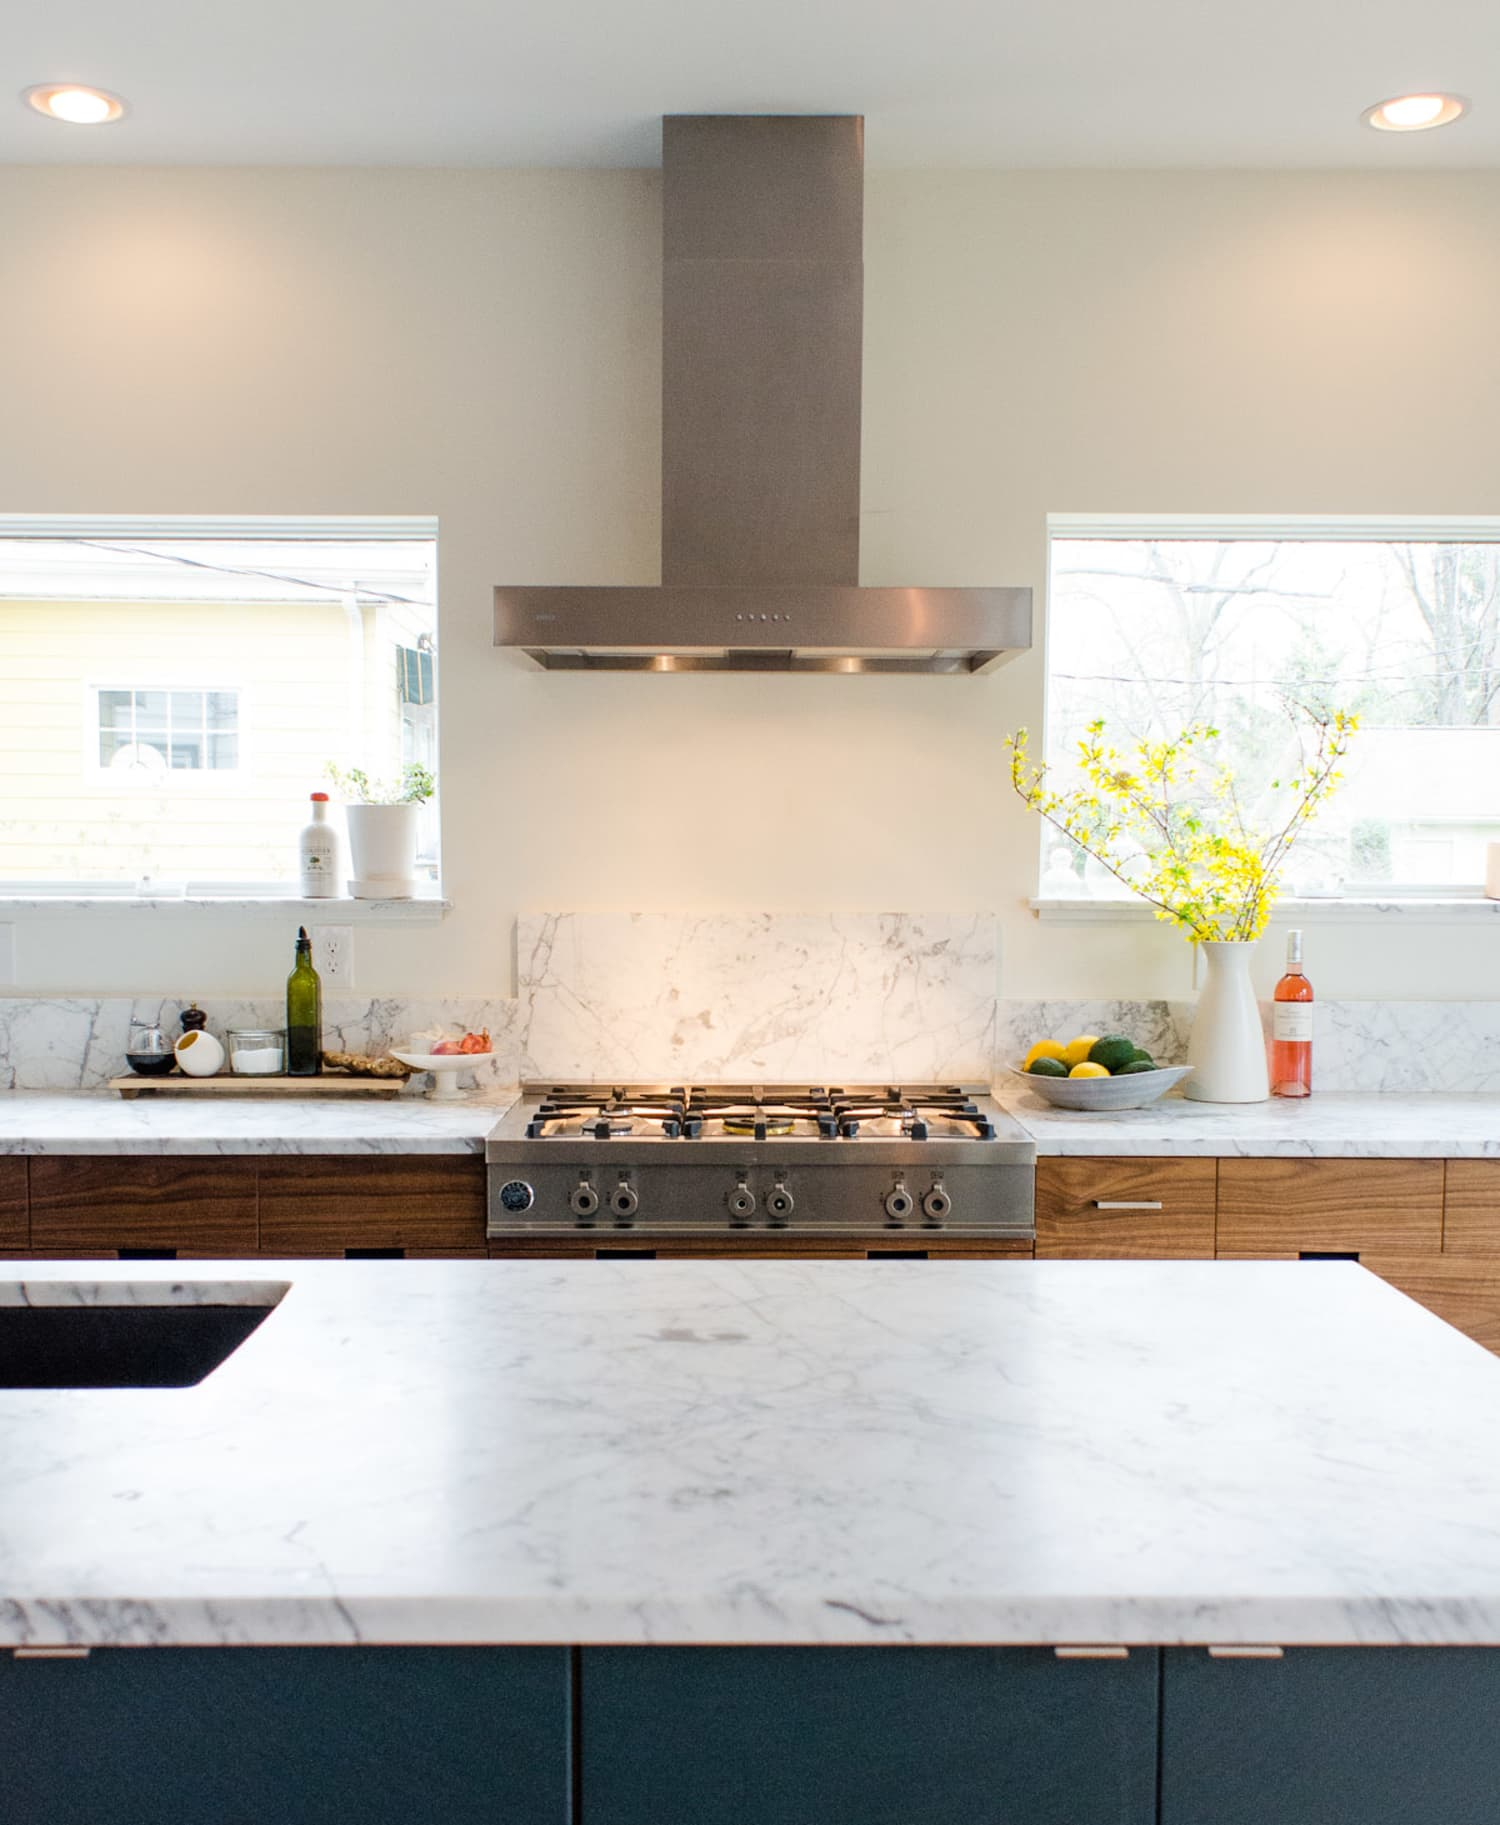 Exceptionnel How Much Did Your Marble Countertops Cost?